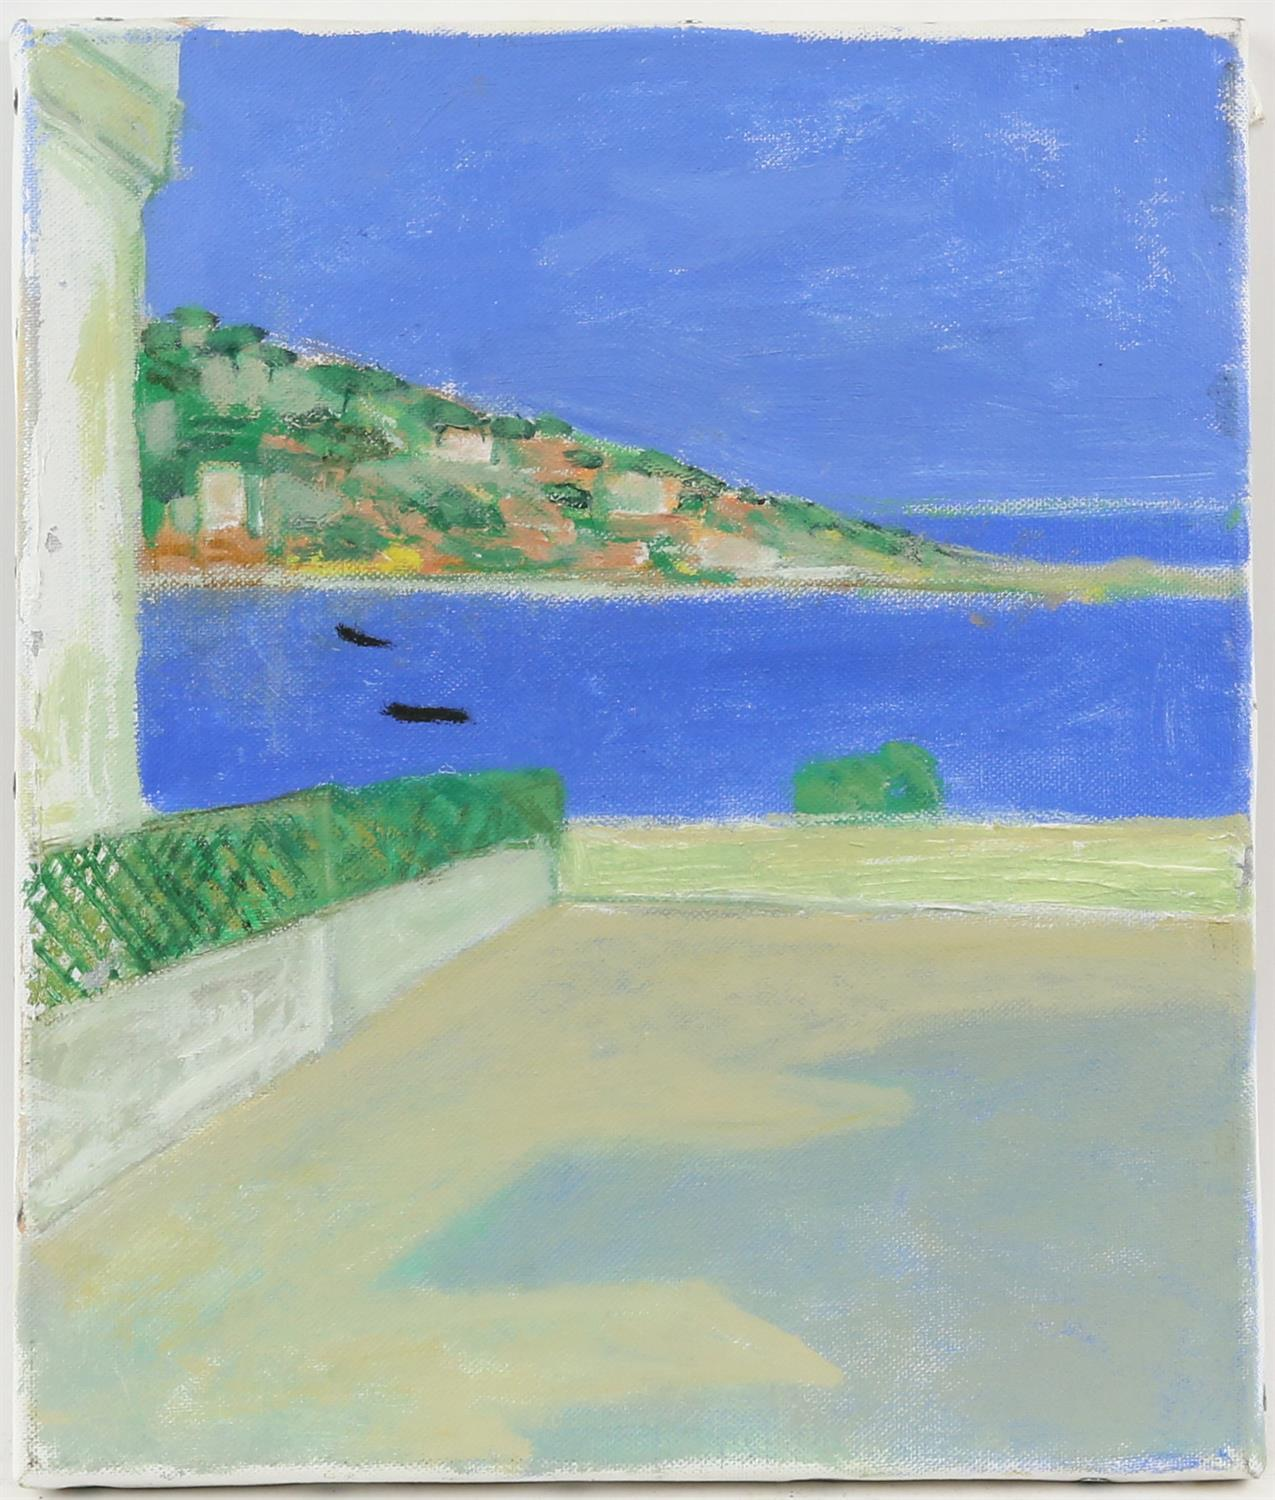 Richard Beer (British, 1928-2017). Two European landscapes, oil on canvas, unsigned, - Image 3 of 3